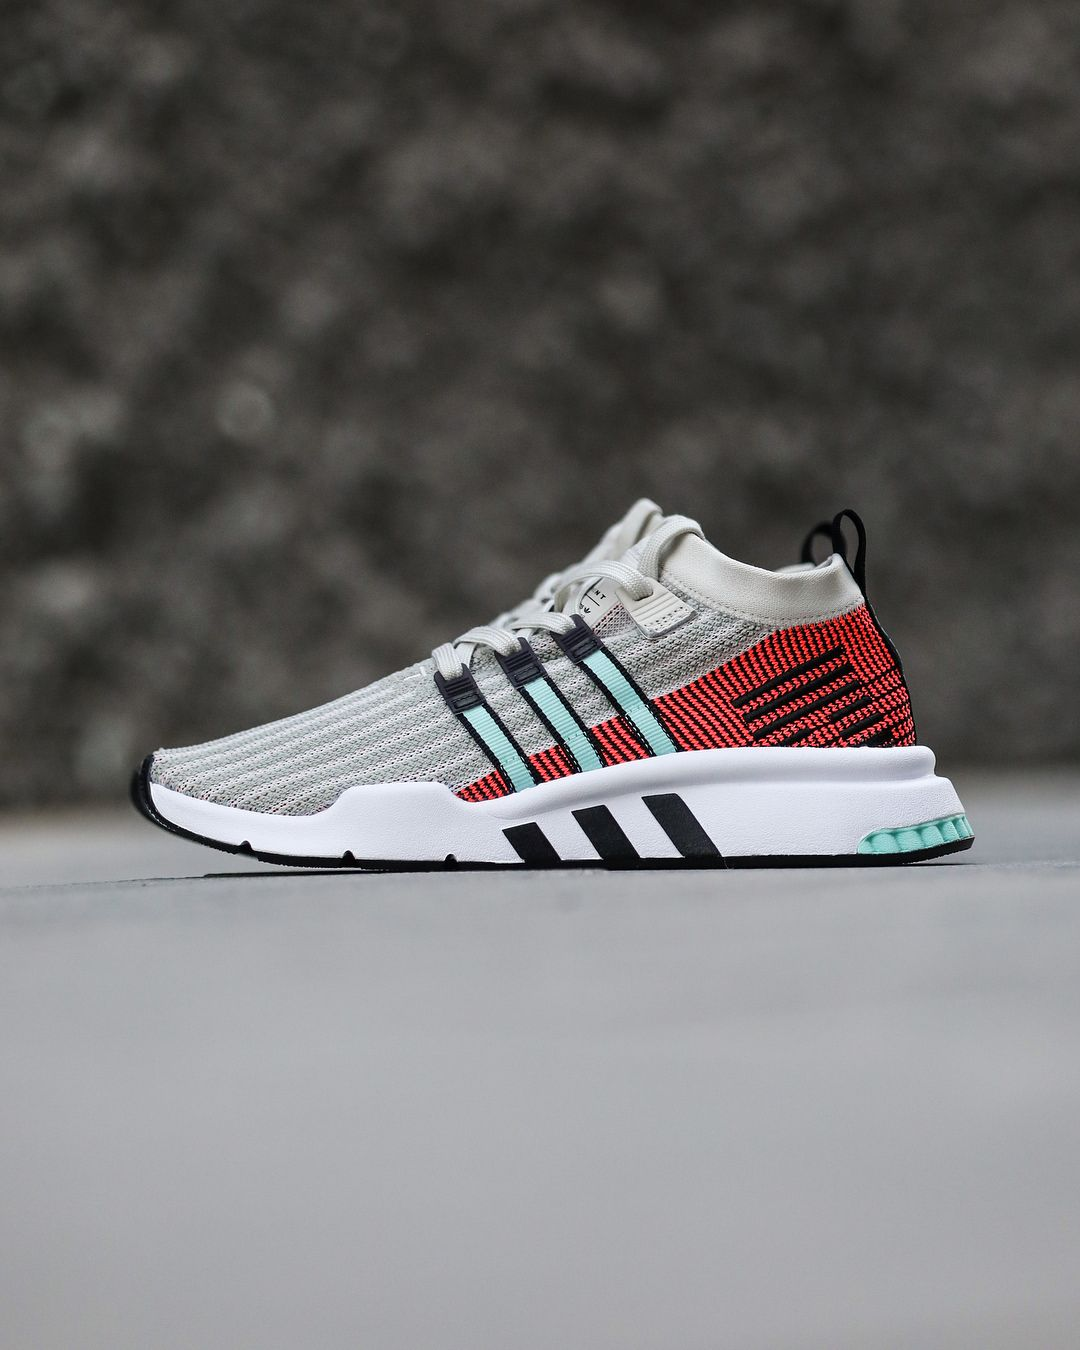 Zapatillas Support Mid Adidas AdvEn Originals Eqt 2019 hQCrsdtx